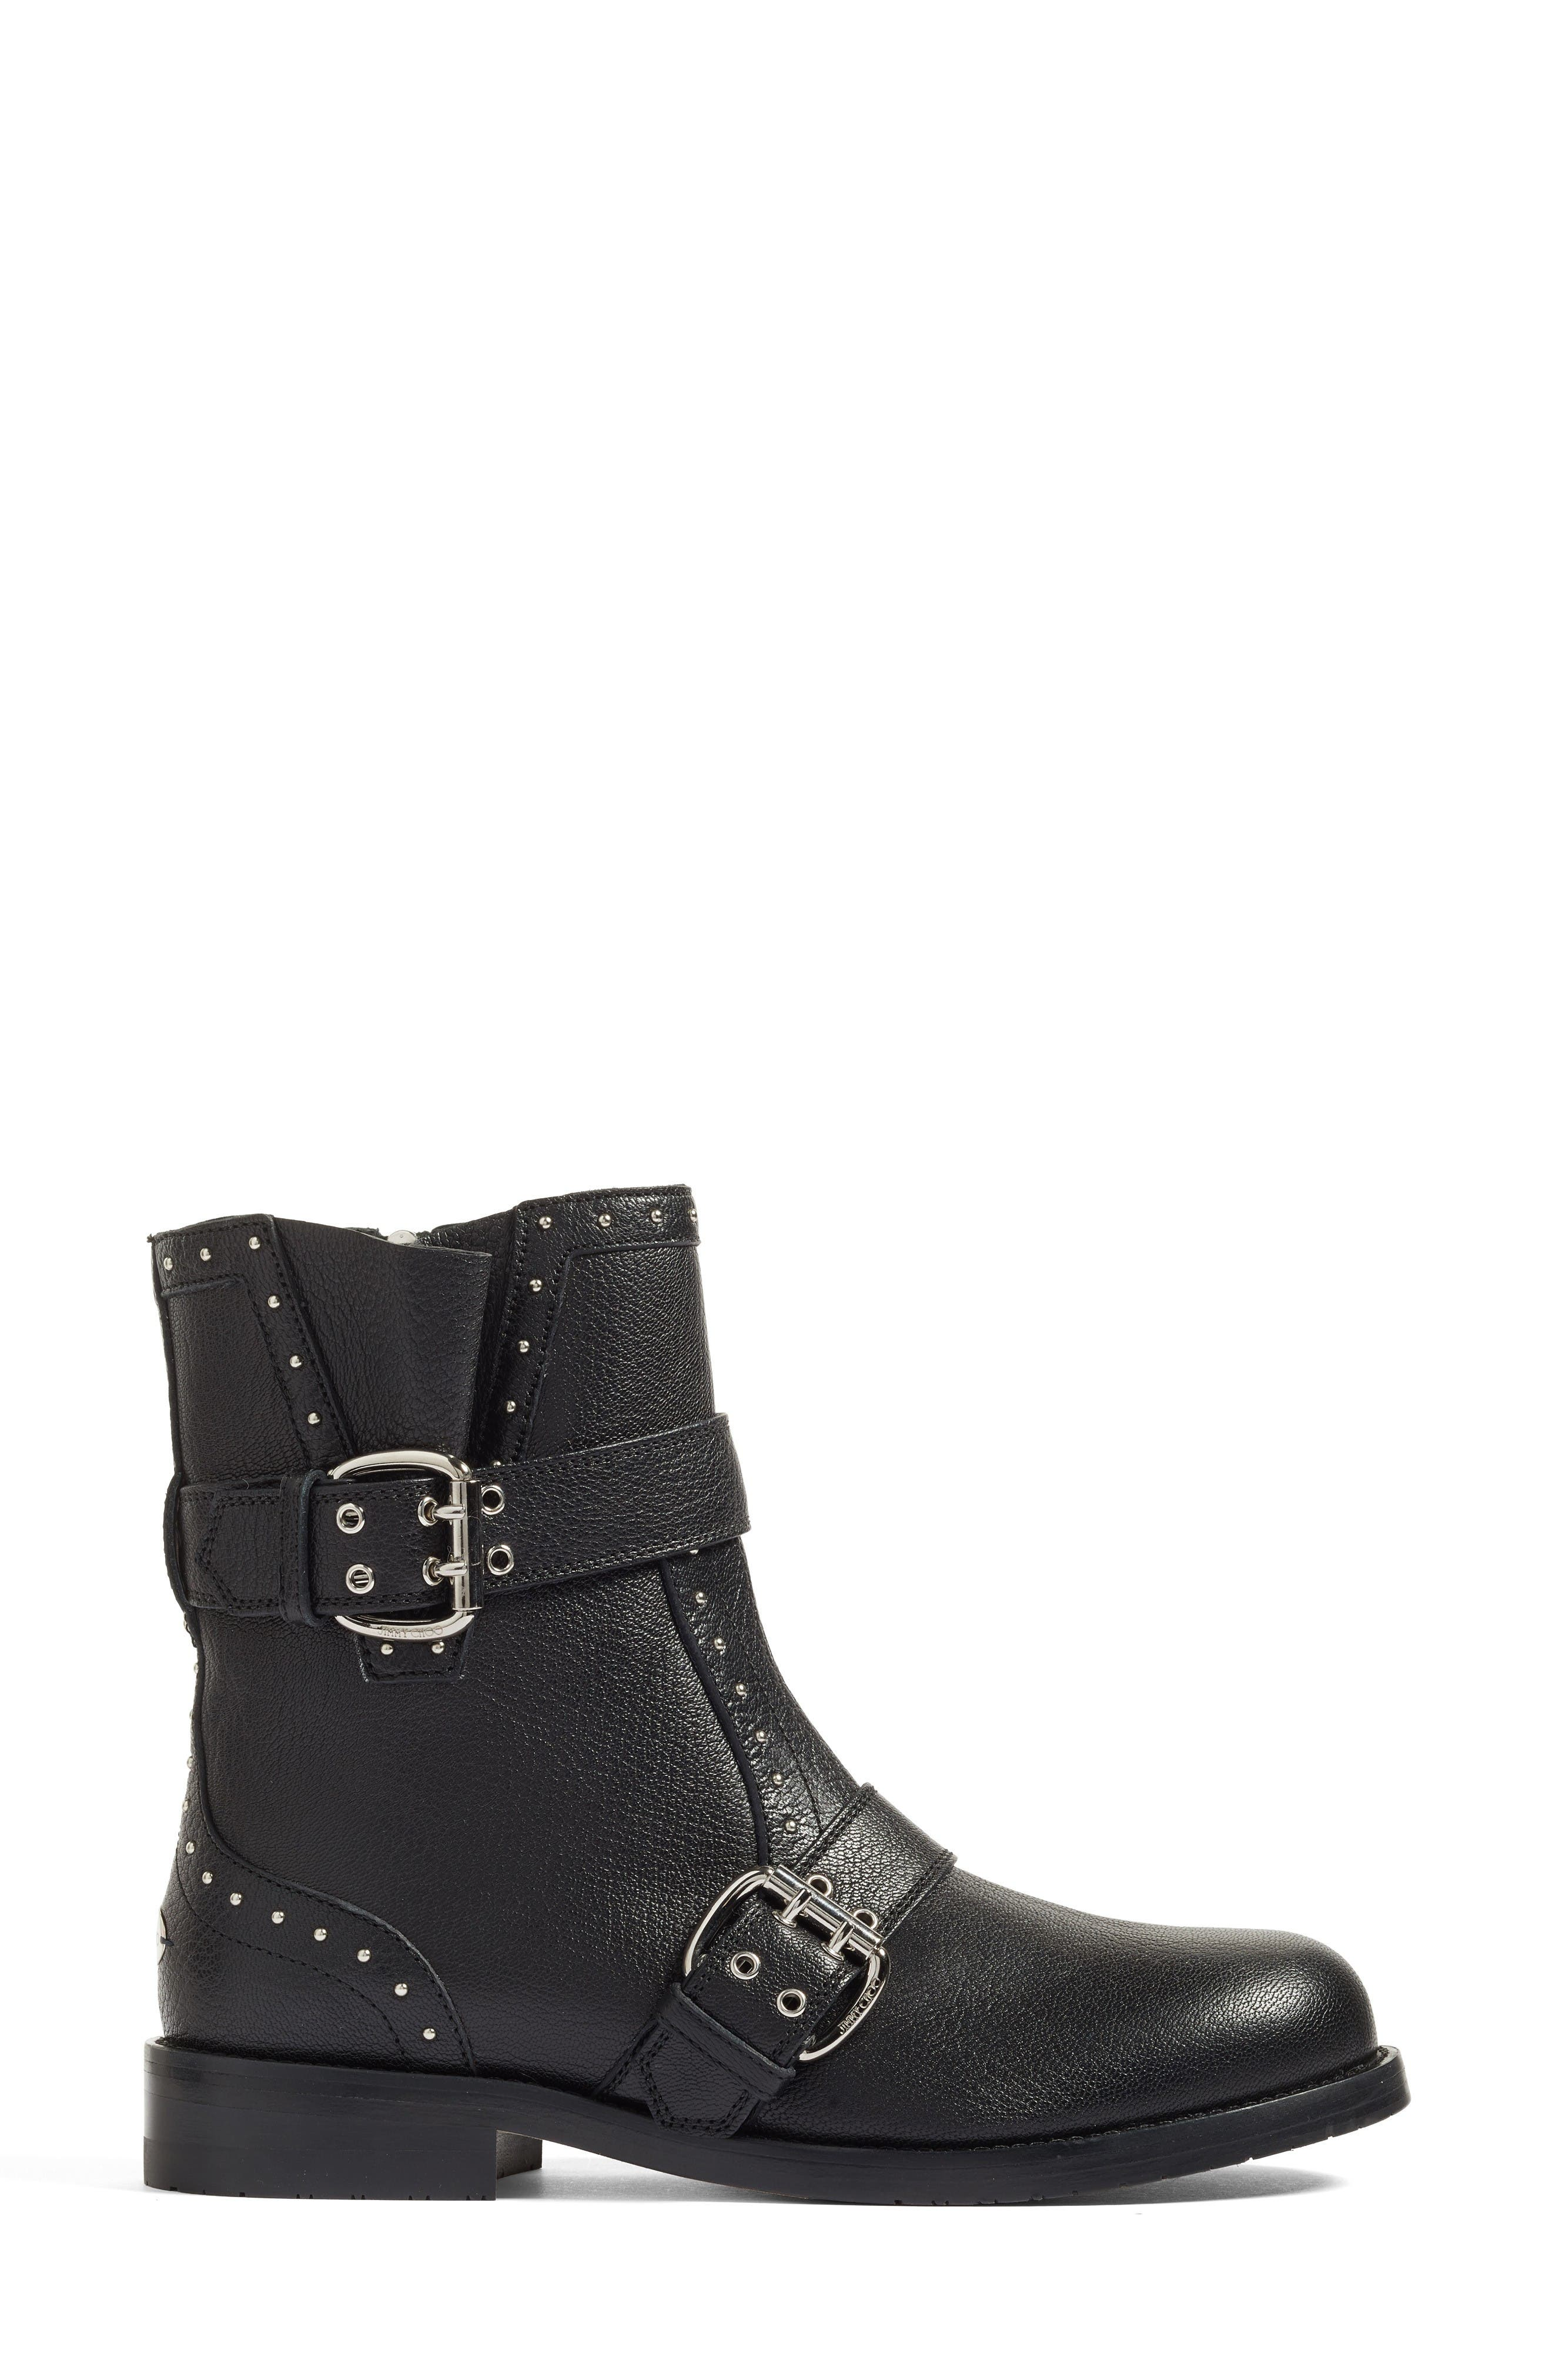 Blyss Combat Boot,                             Alternate thumbnail 3, color,                             Black Leather